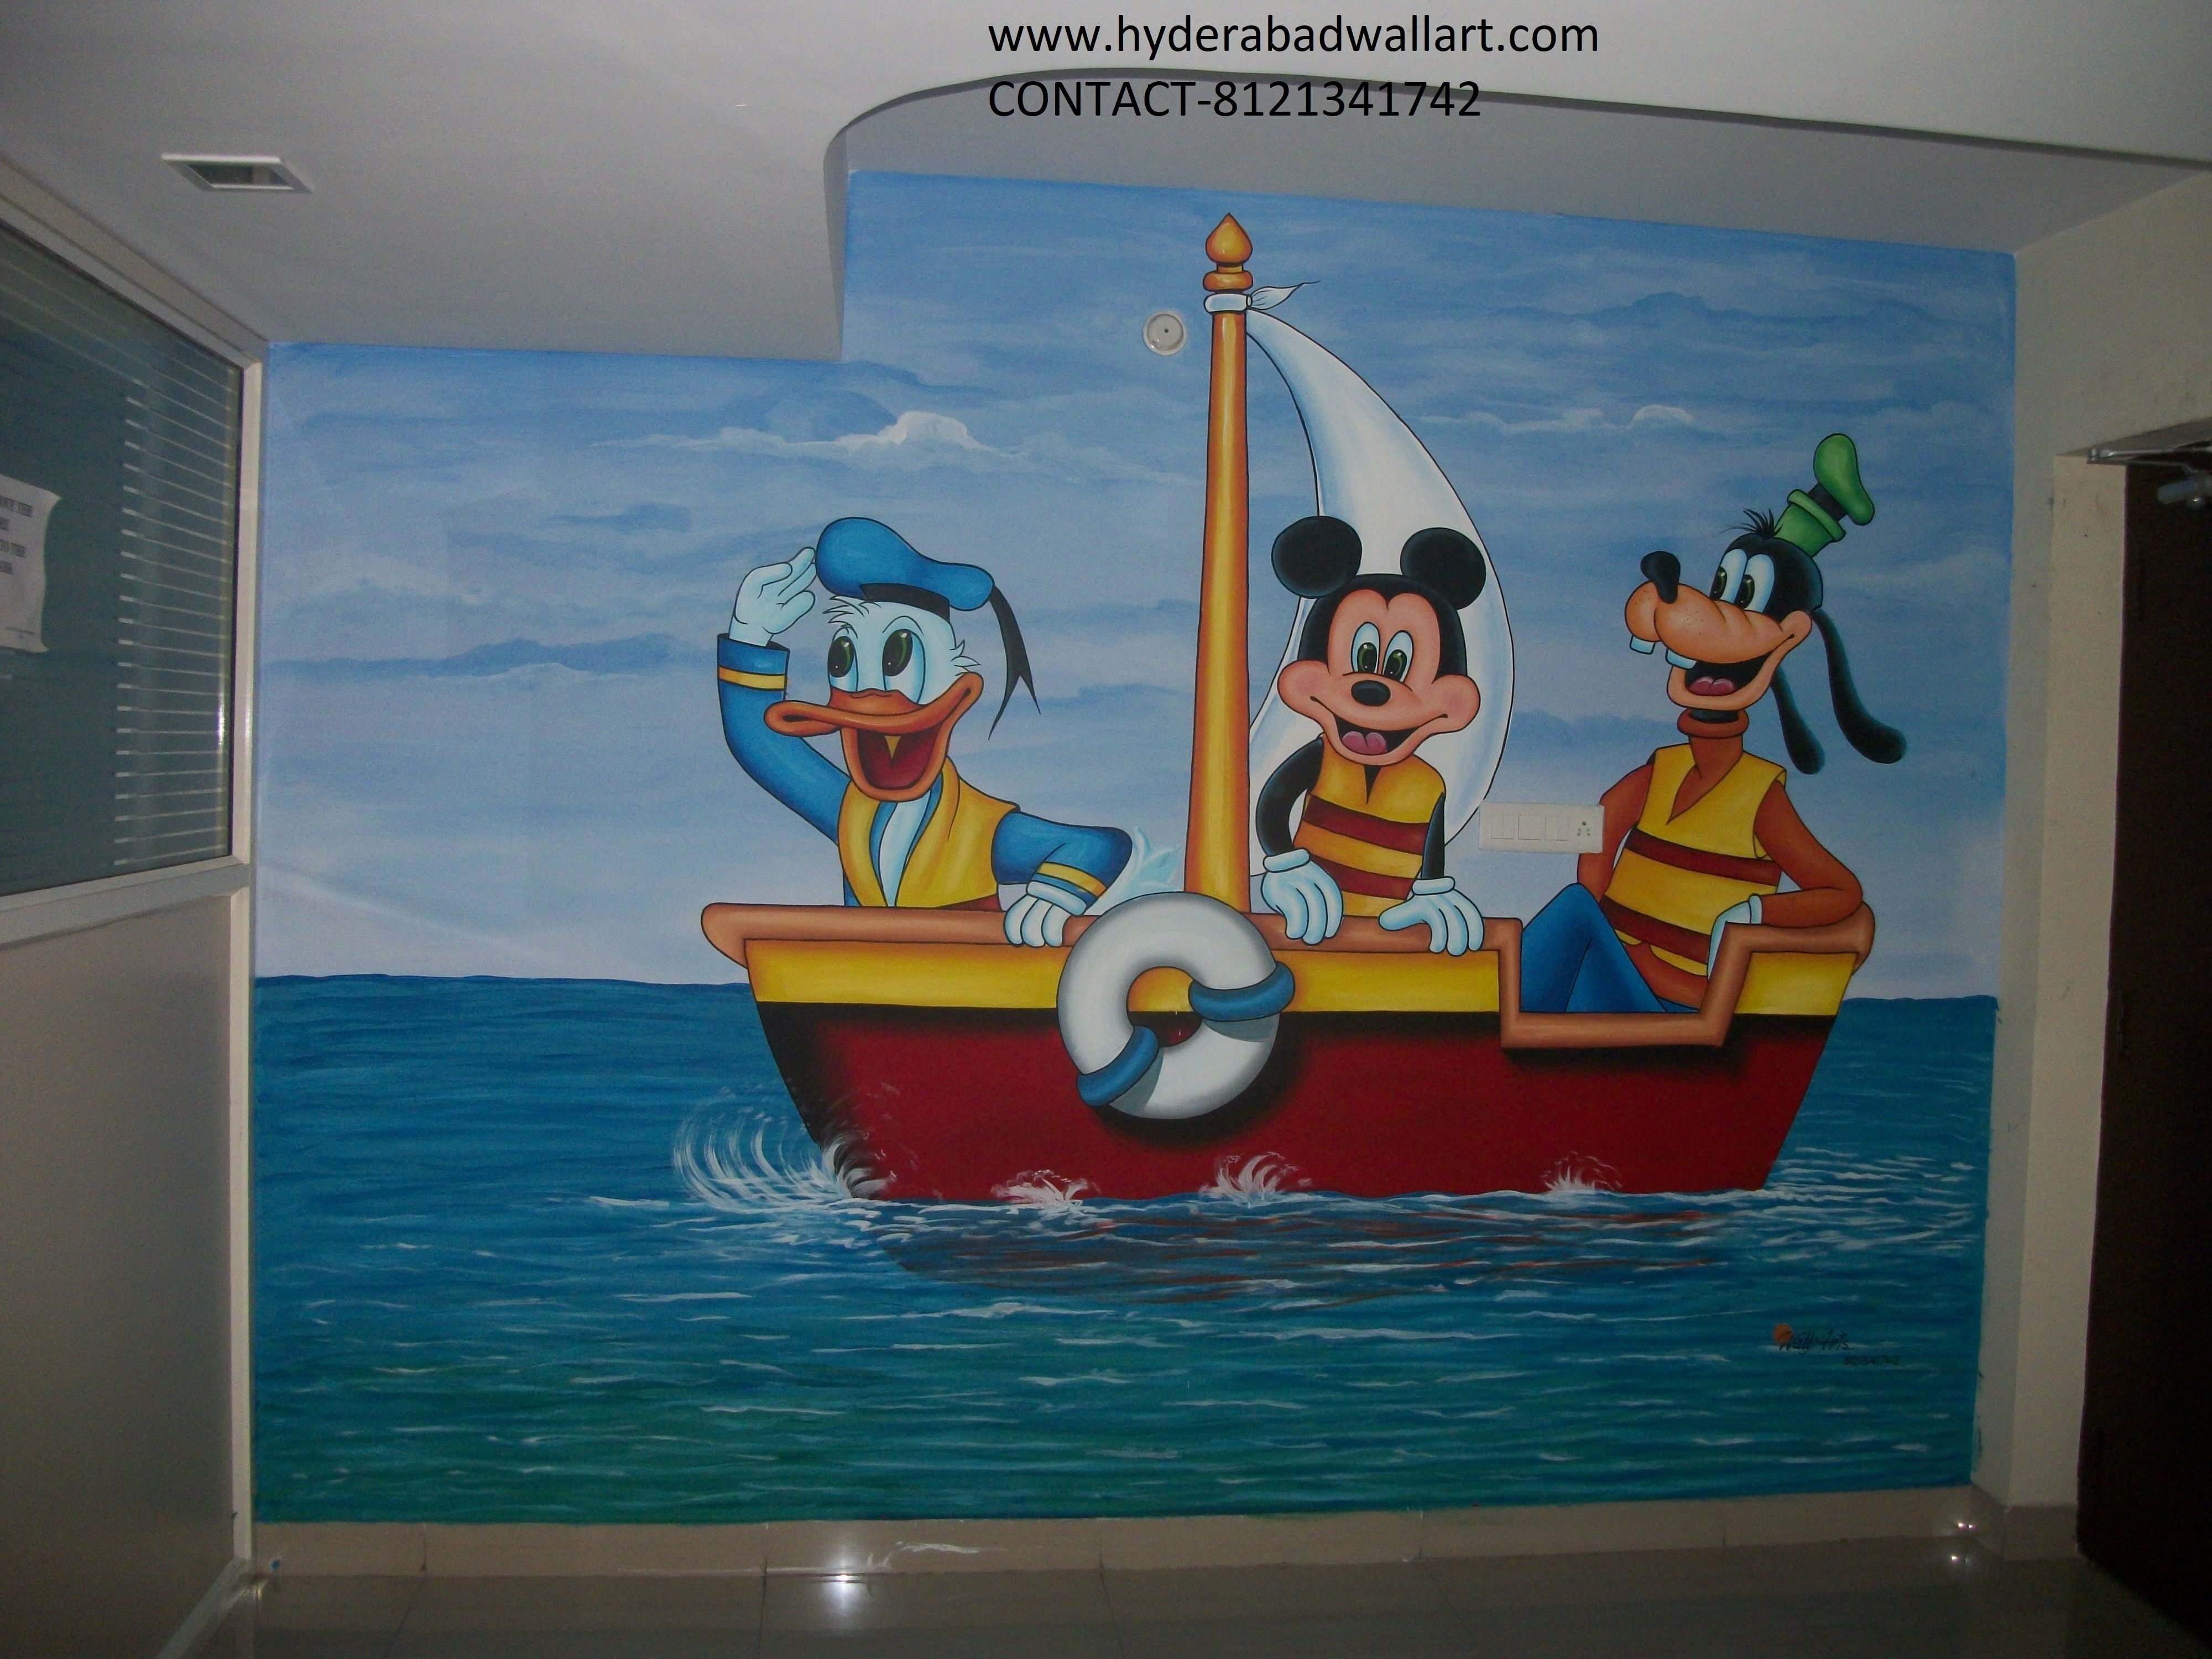 Mickey Mouse Minnie Mouse And Donald Duck Cartoon Wall Art Work For